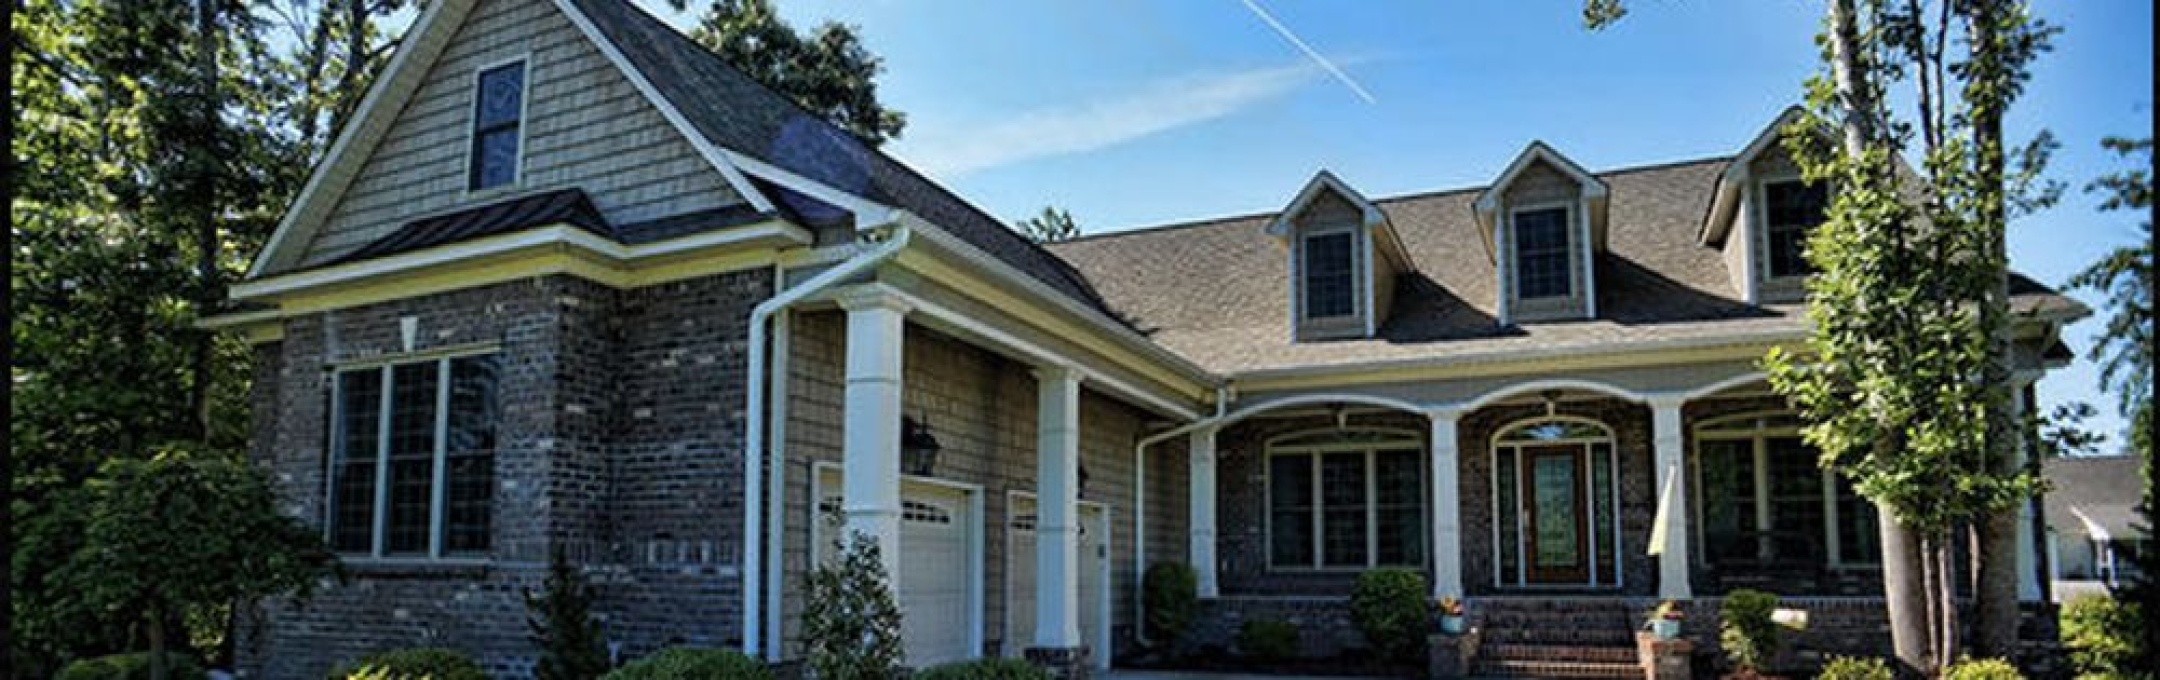 New Bern, NC Homes for Sale \u0026 Real Estate - Neuse Realty \u2014 Homes ...